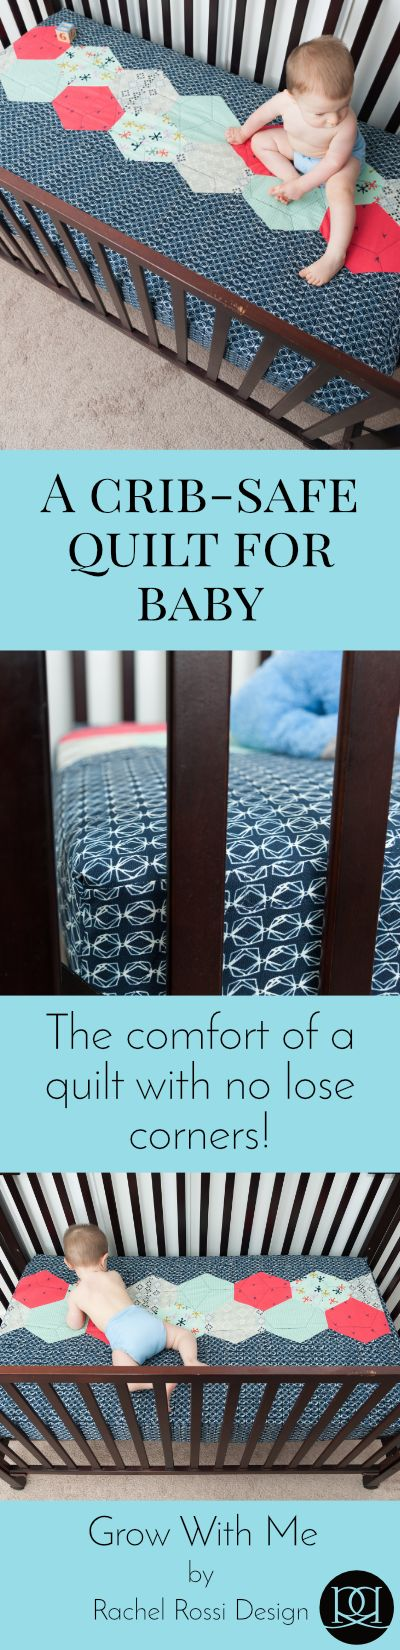 The Grow With Me Quilt is a great quilt pattern for baby showers and expectant mothers! Now you can give baby the comfort of a quilt with no lose corners.   Rachel Rossi Design